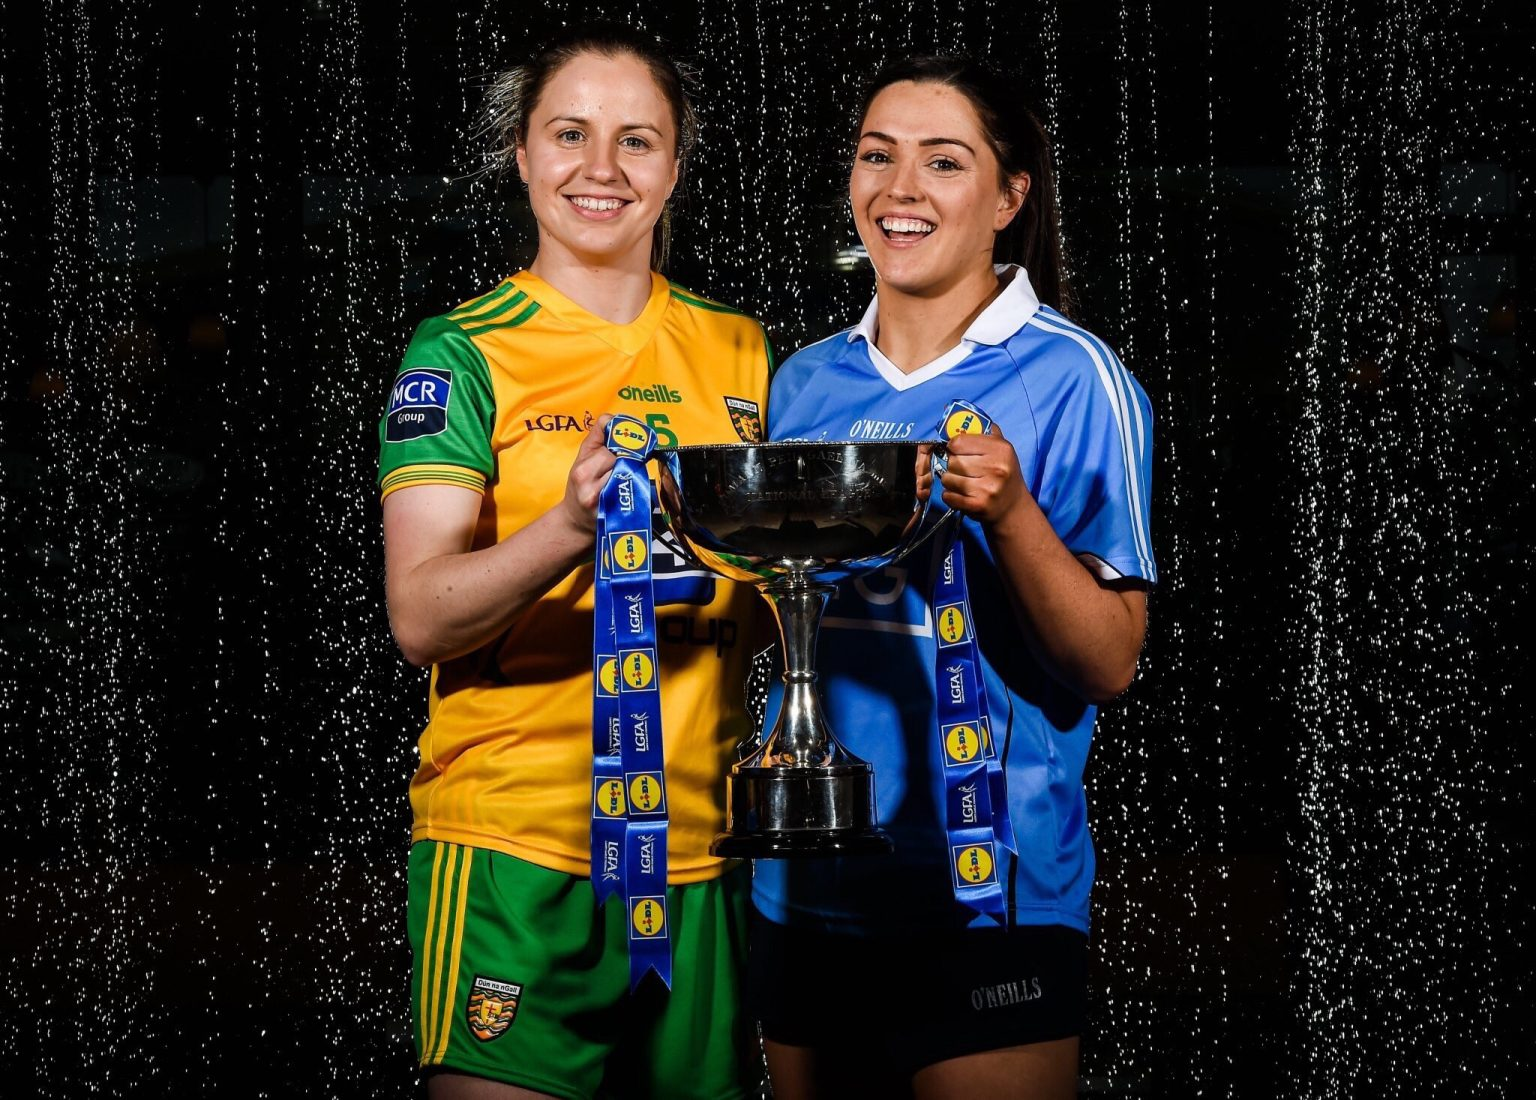 A Donegal Ladies Footballer in a yellow jersey with green sleeves holding the Division 1 National League Trophy with a Dublin player in a sky blue jersey to advertise Champions Dublin playing against Donegal in Croke Park